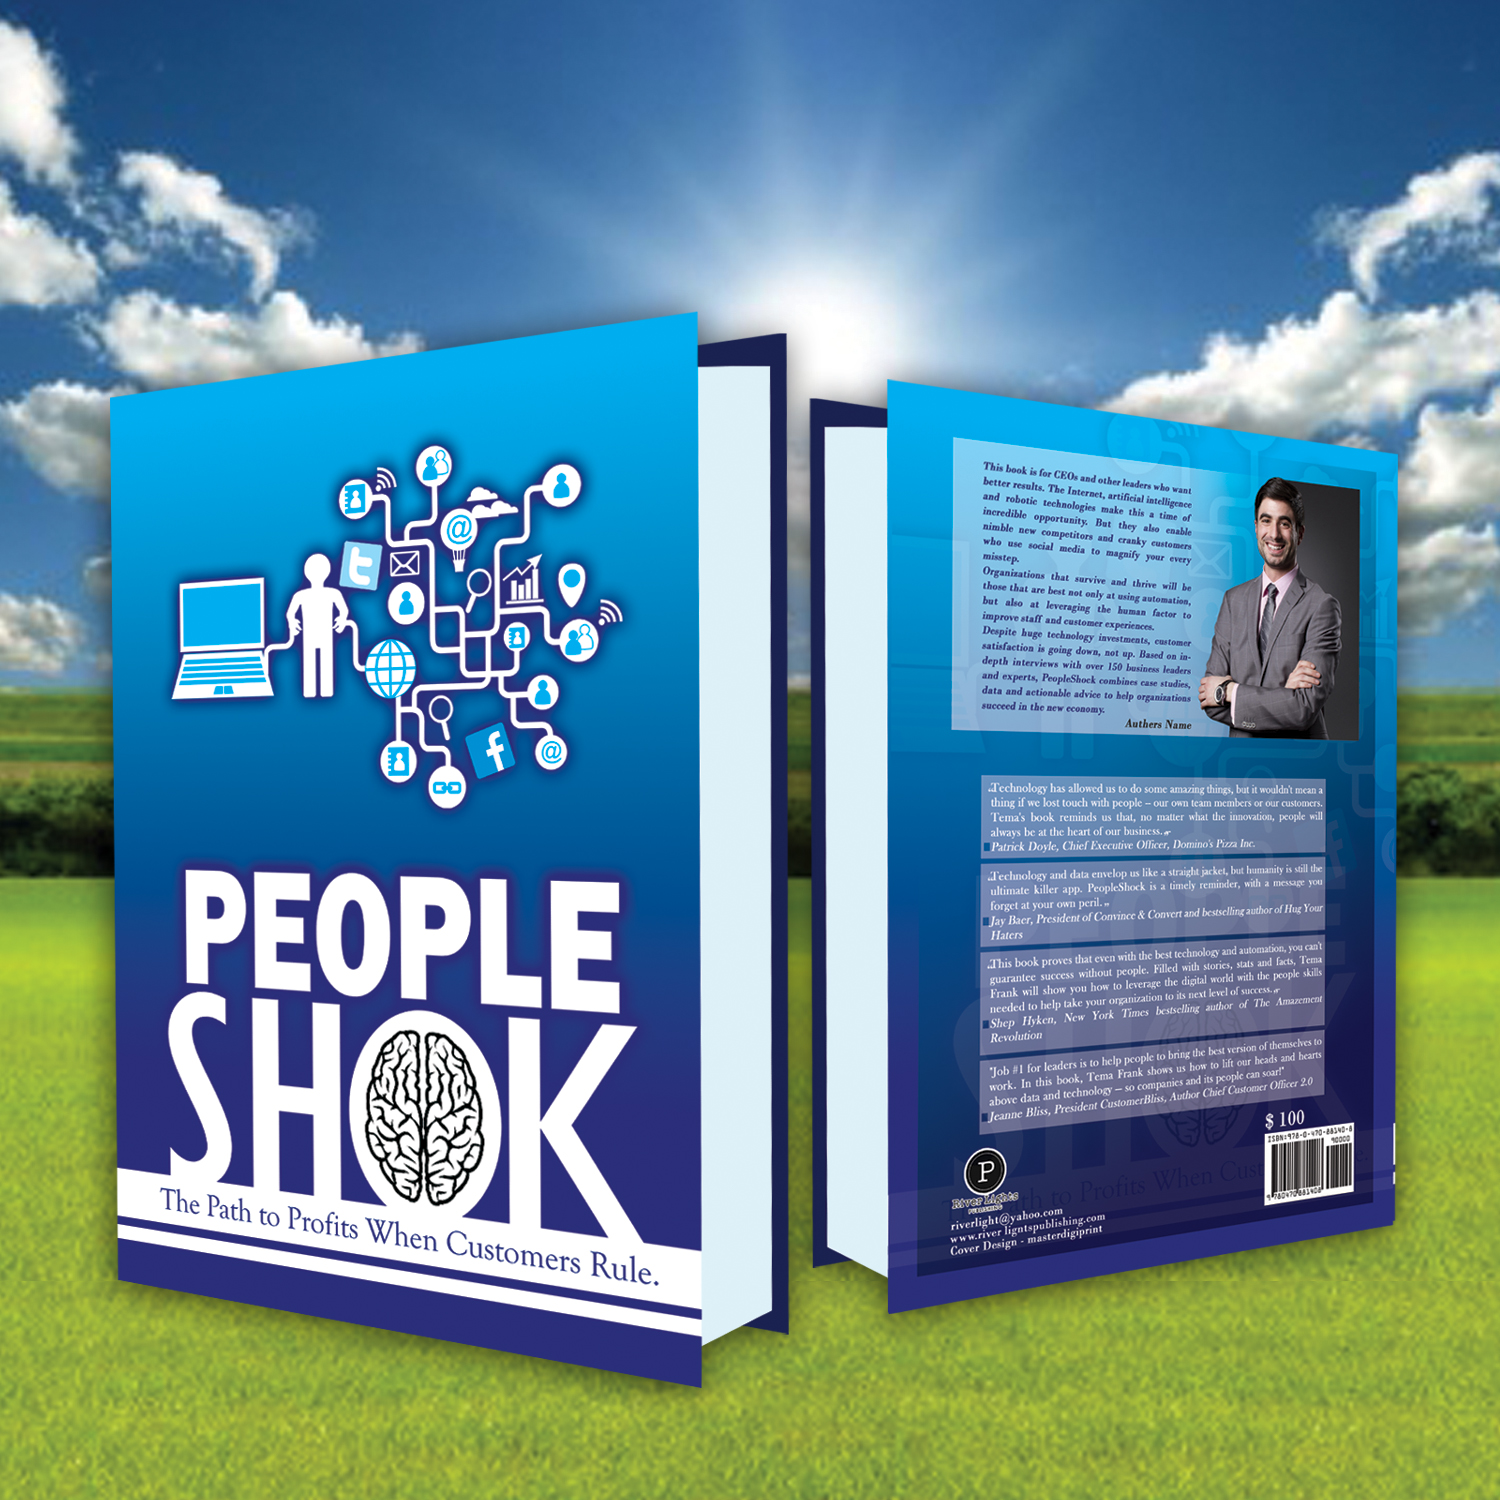 Bold, Serious, Business Book Cover Design for a Company by